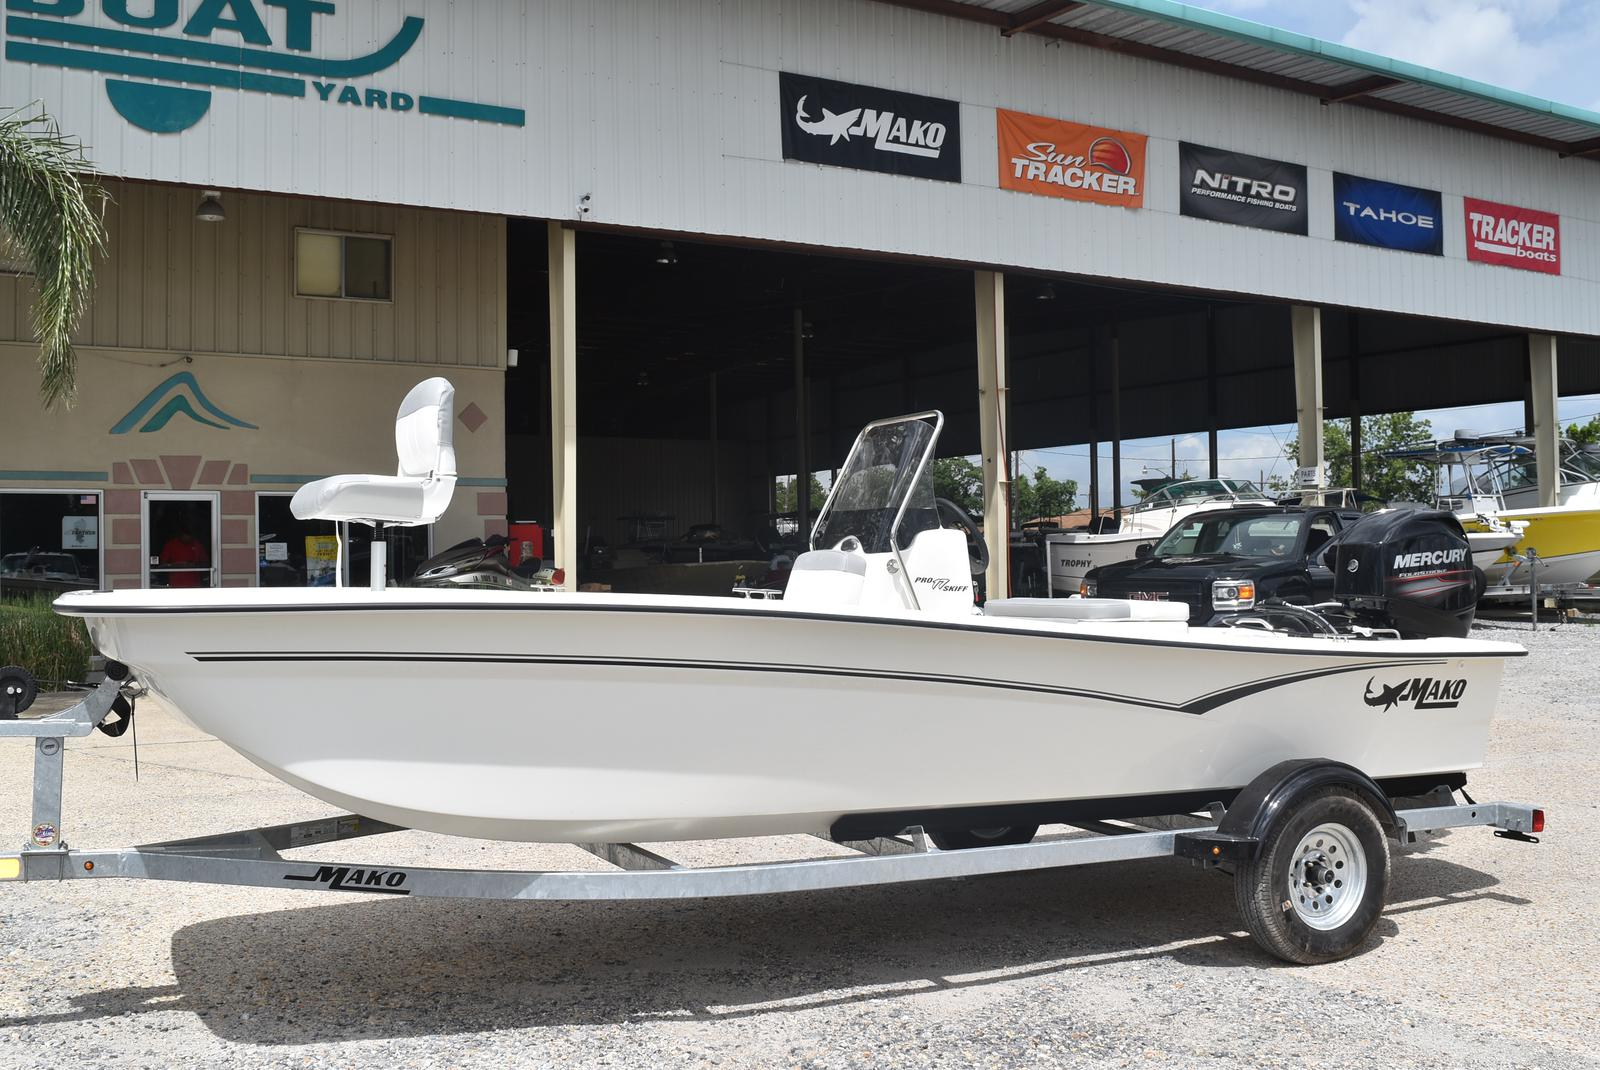 2020 Mako boat for sale, model of the boat is Pro Skiff 17, 75 ELPT & Image # 123 of 702